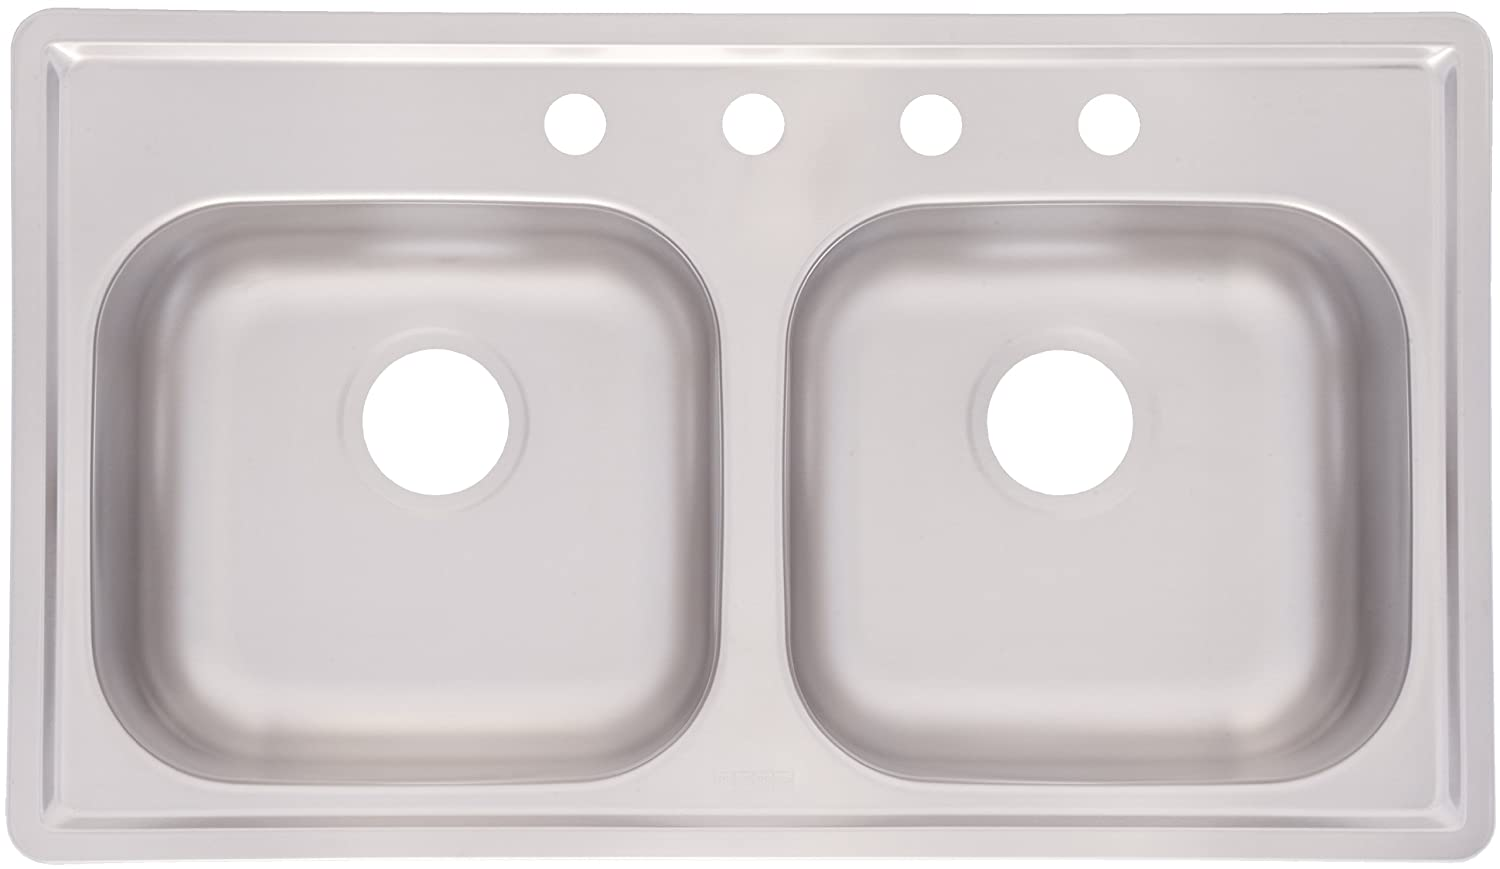 Kindred FMSB654NB Double Bowl Stainless Steel 33 x 19-Inch Top-mount ...